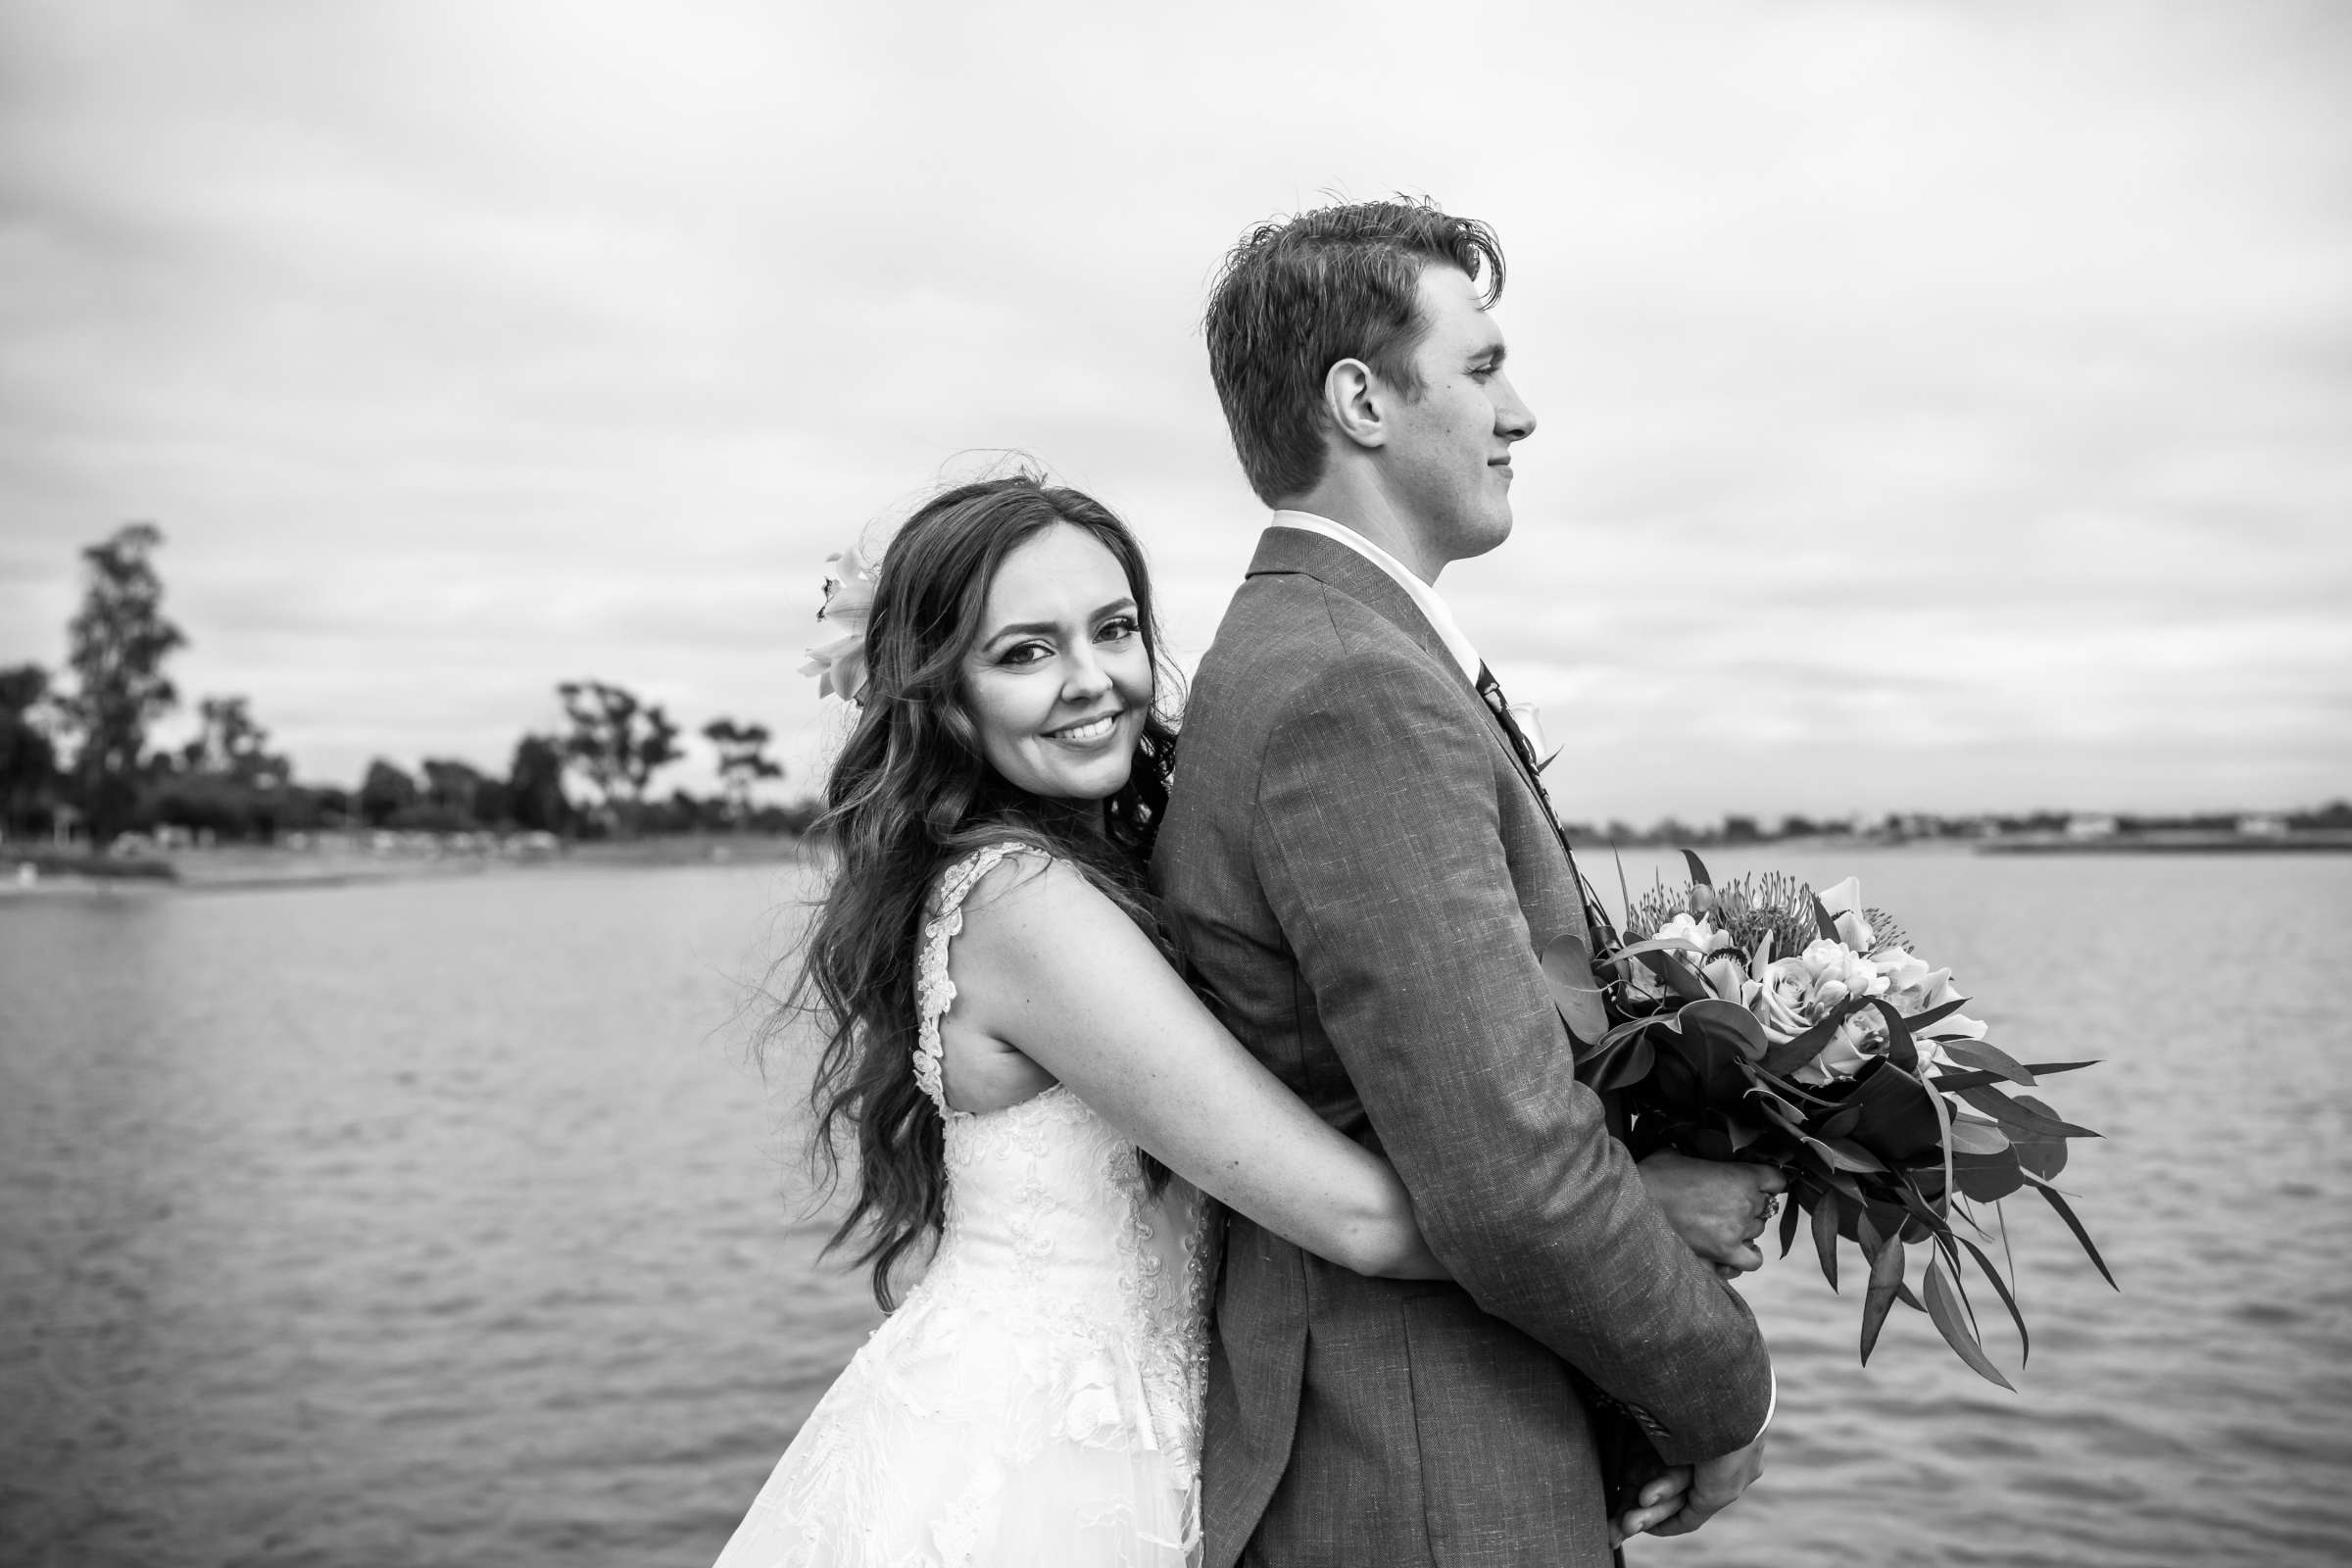 San Diego Mission Bay Resort Wedding coordinated by Cafe Au Love, Lauren and Adam Wedding Photo #5 by True Photography